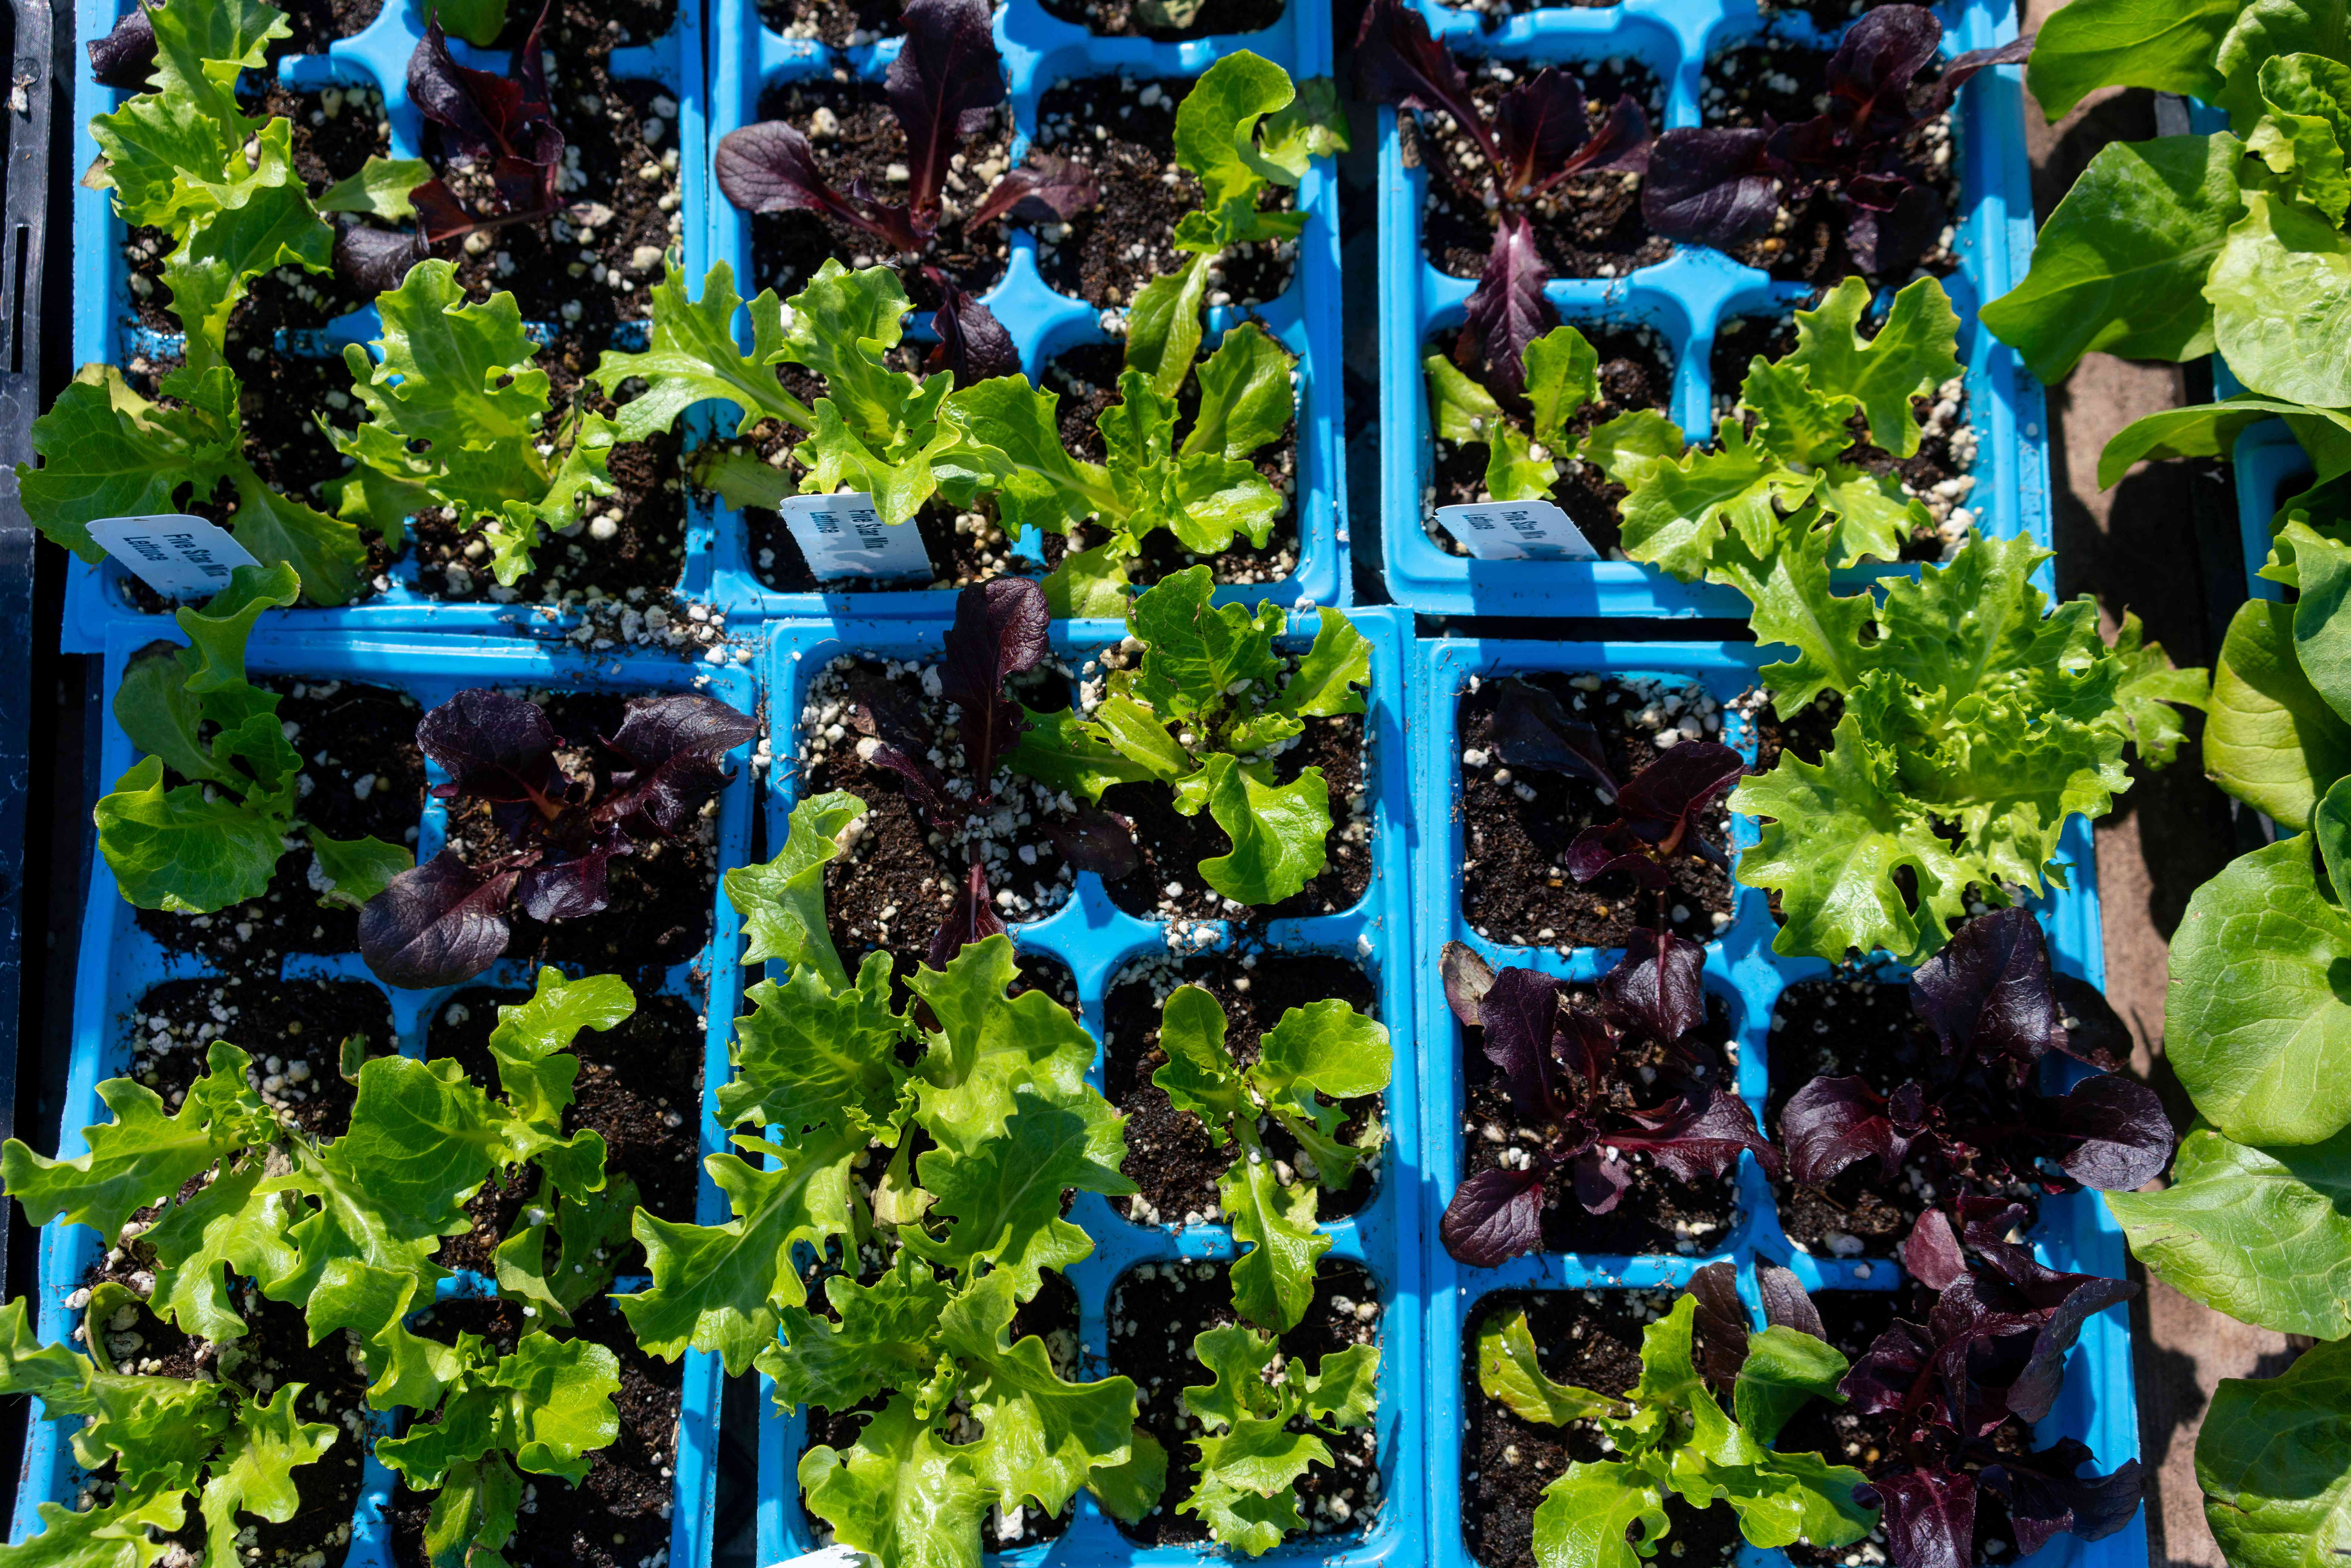 Cuttings transplanted into blue seedling trays with soil